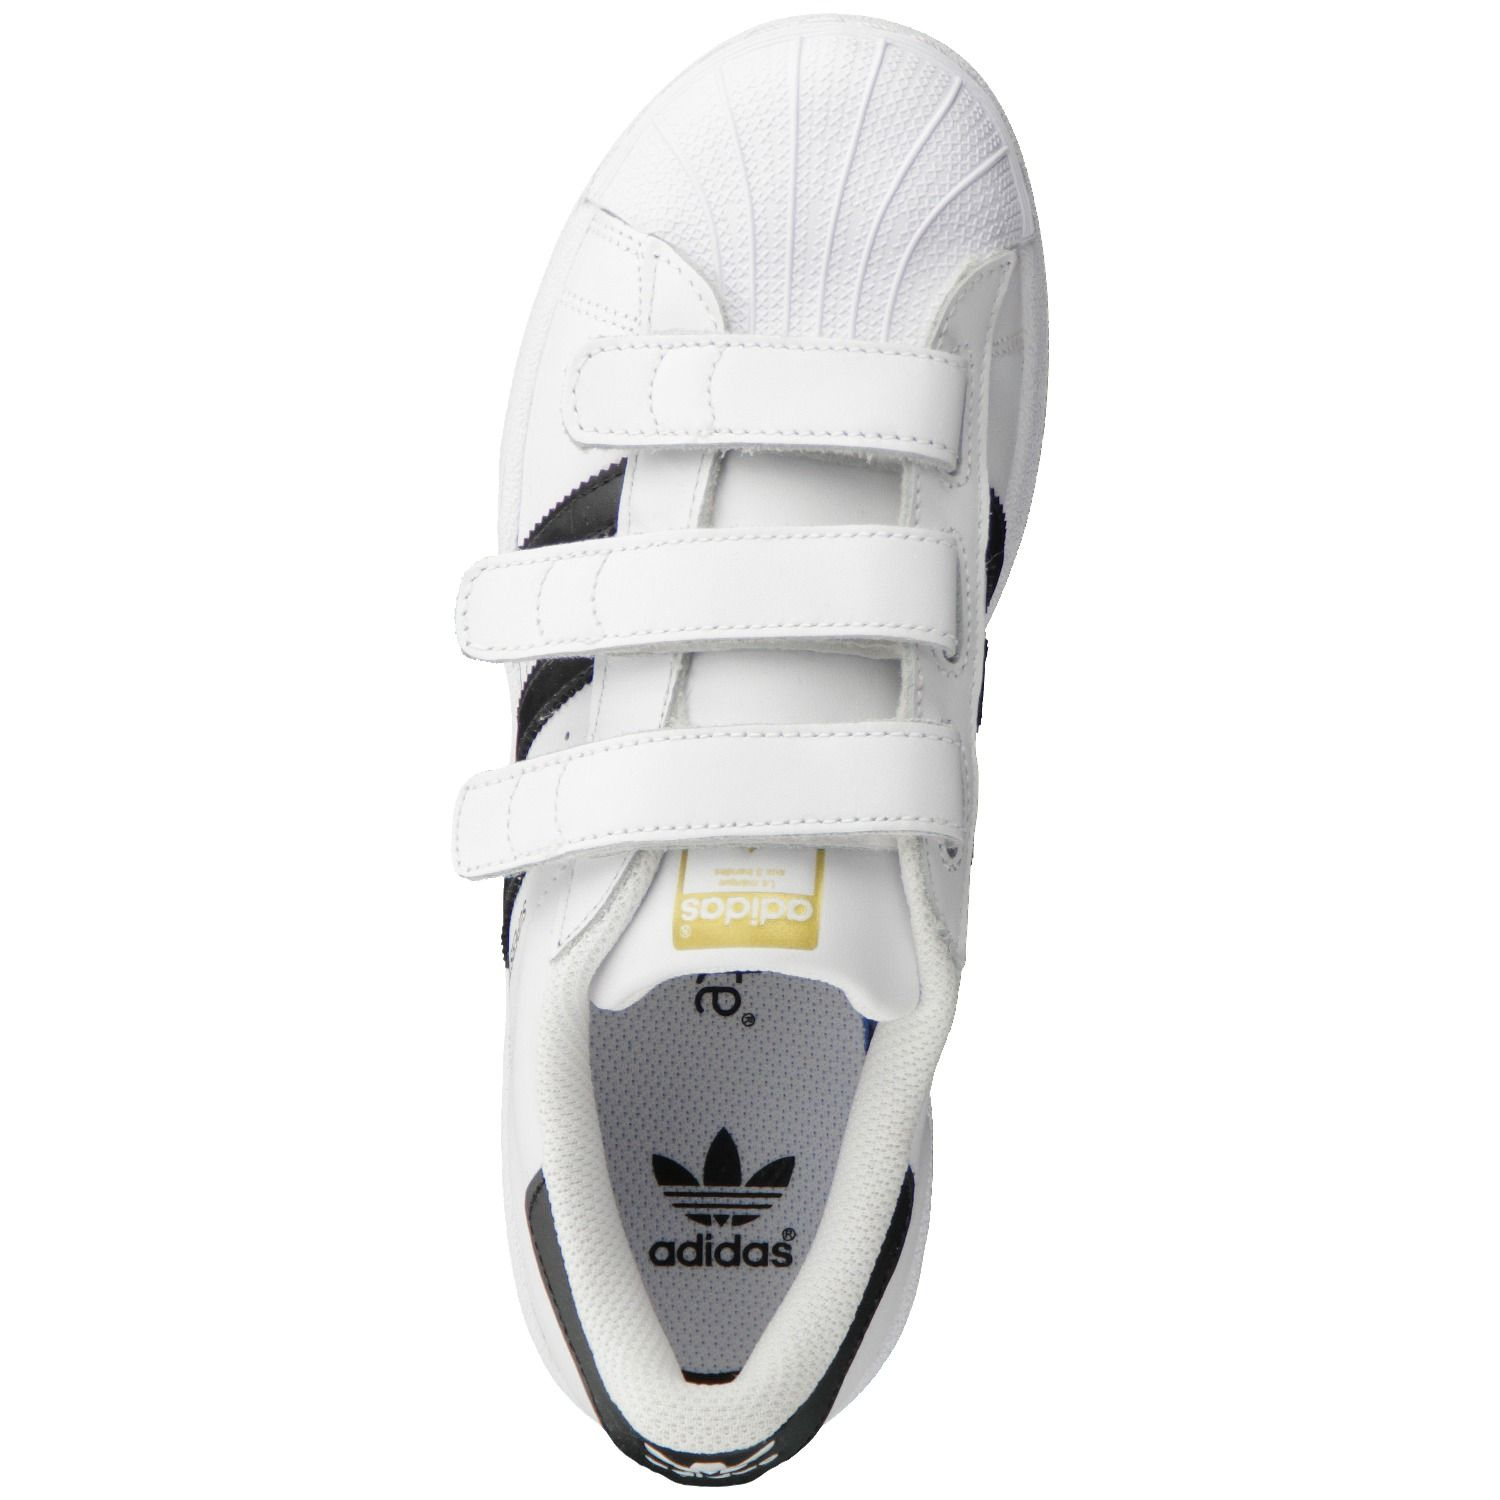 adidas superstar c kinder